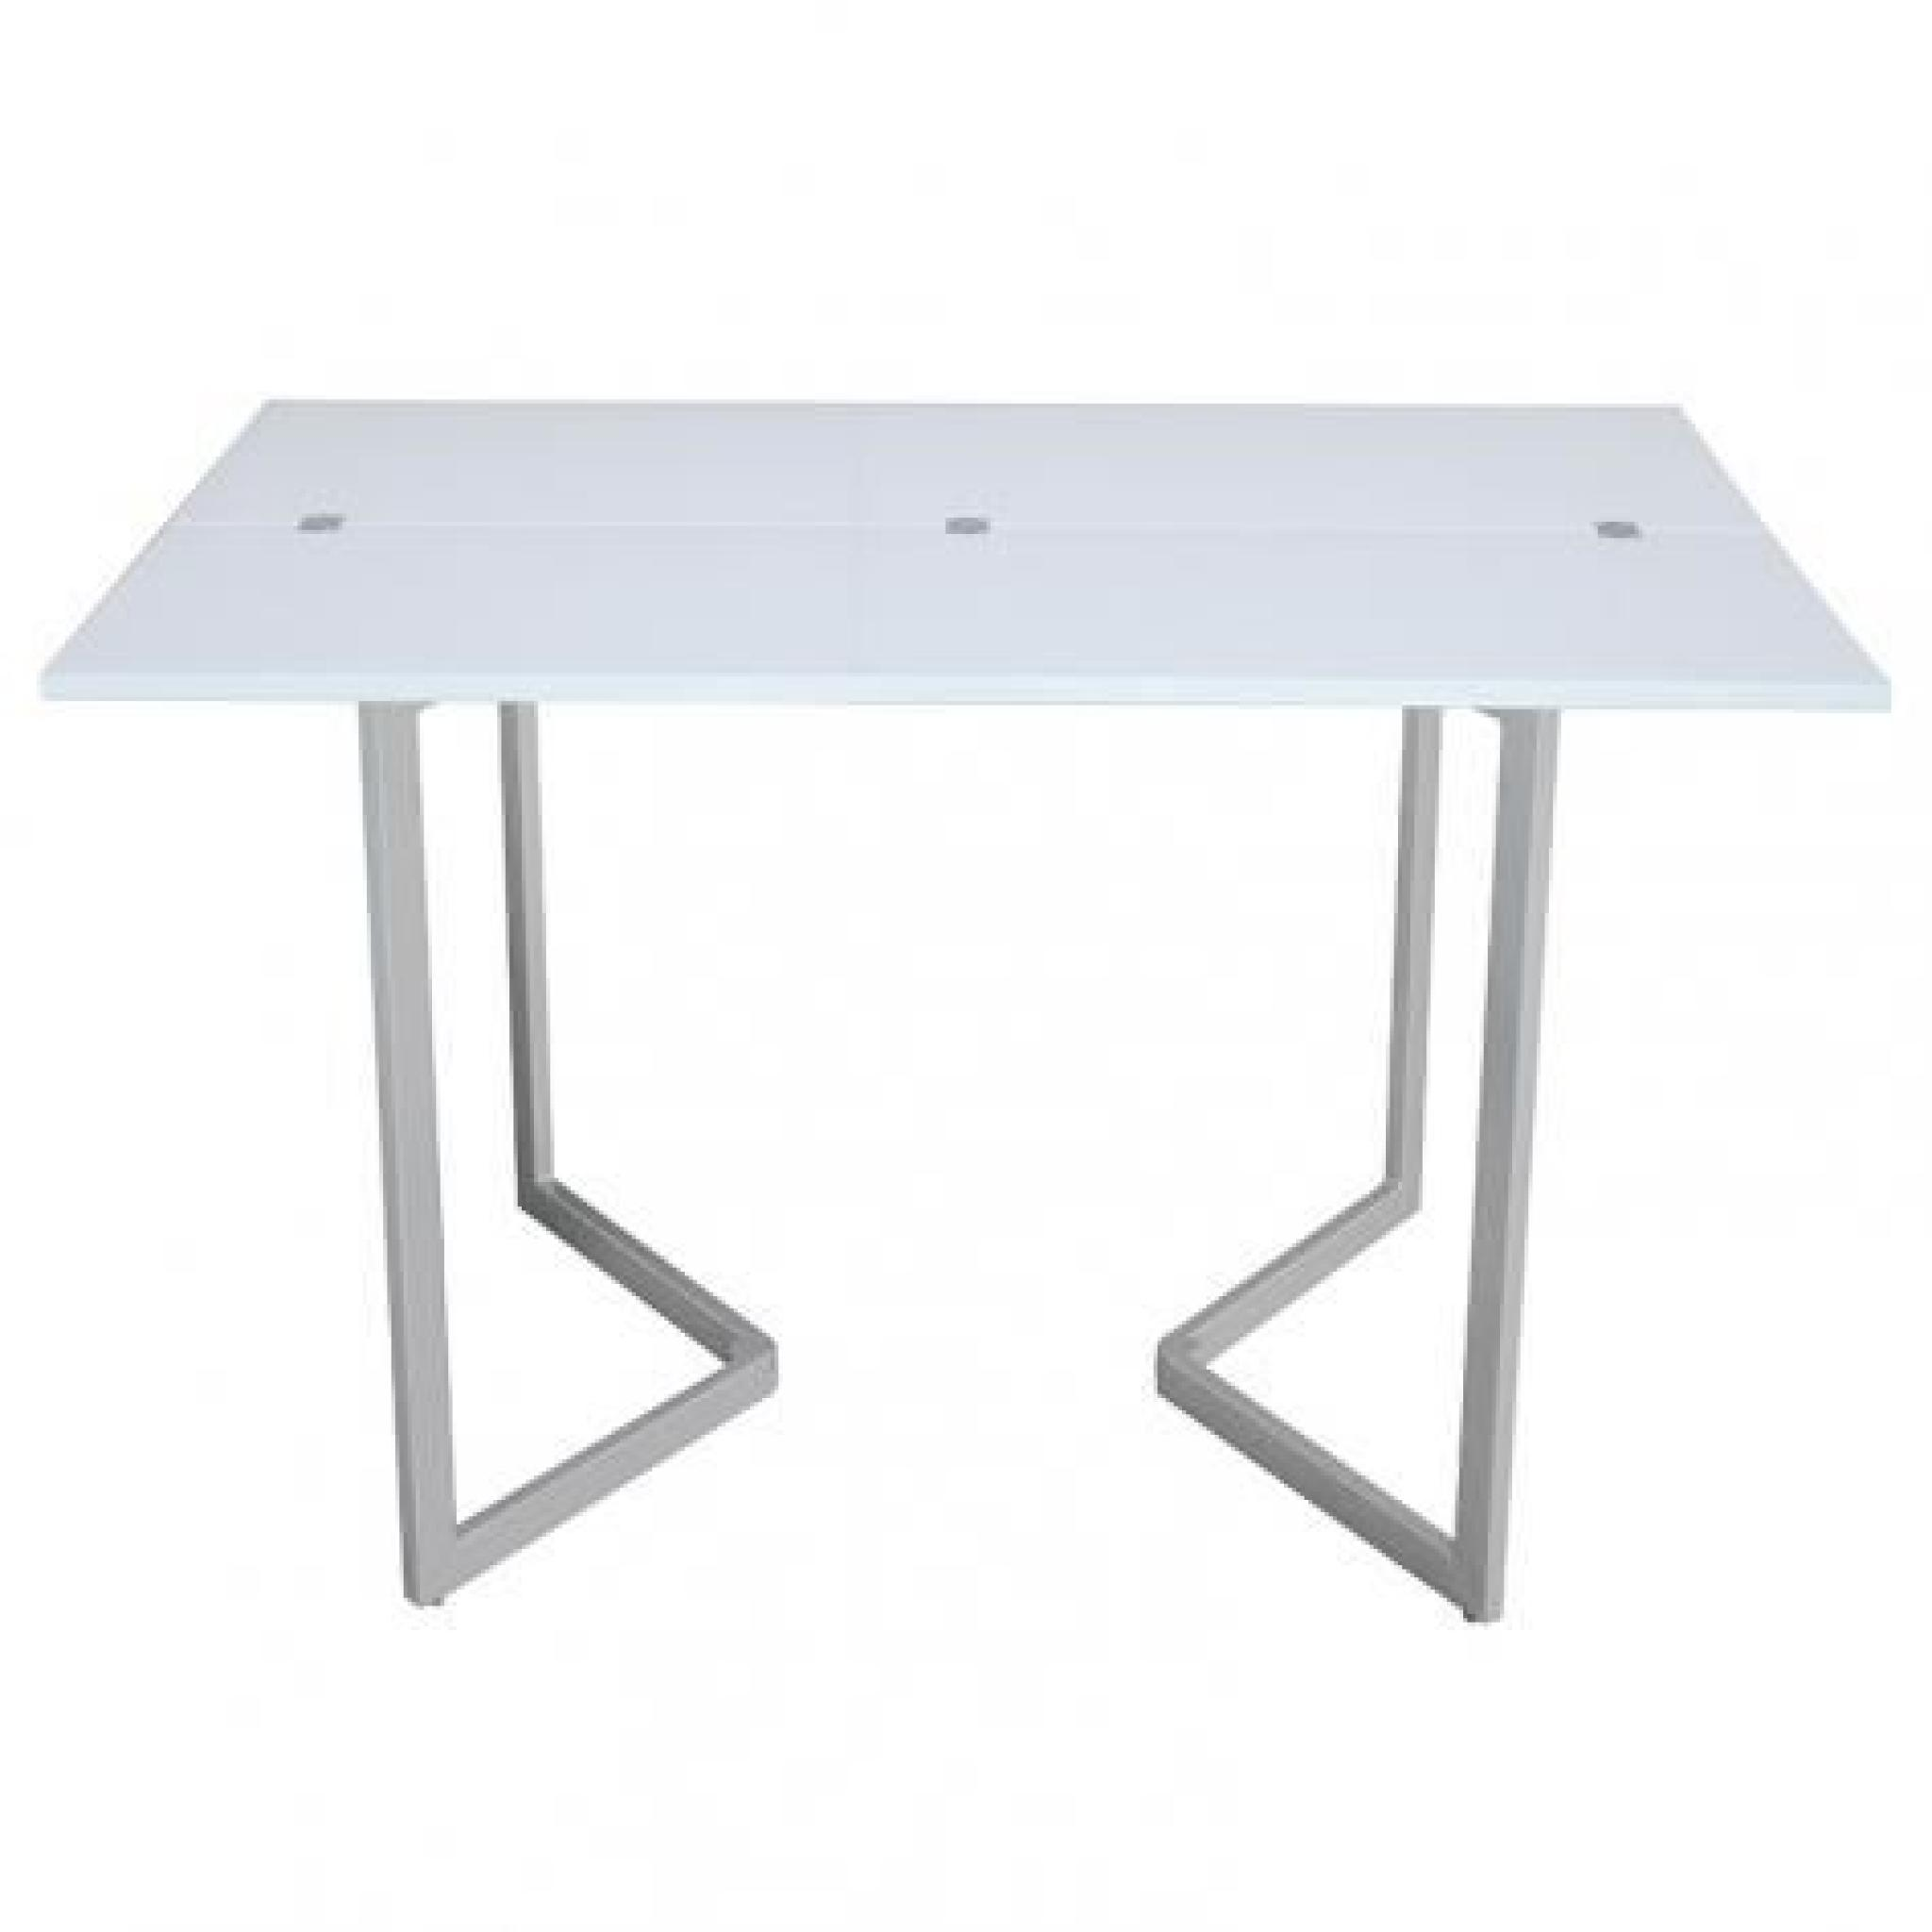 Table console extensible blanche laqu e talia achat for Ensemble buffet table manger